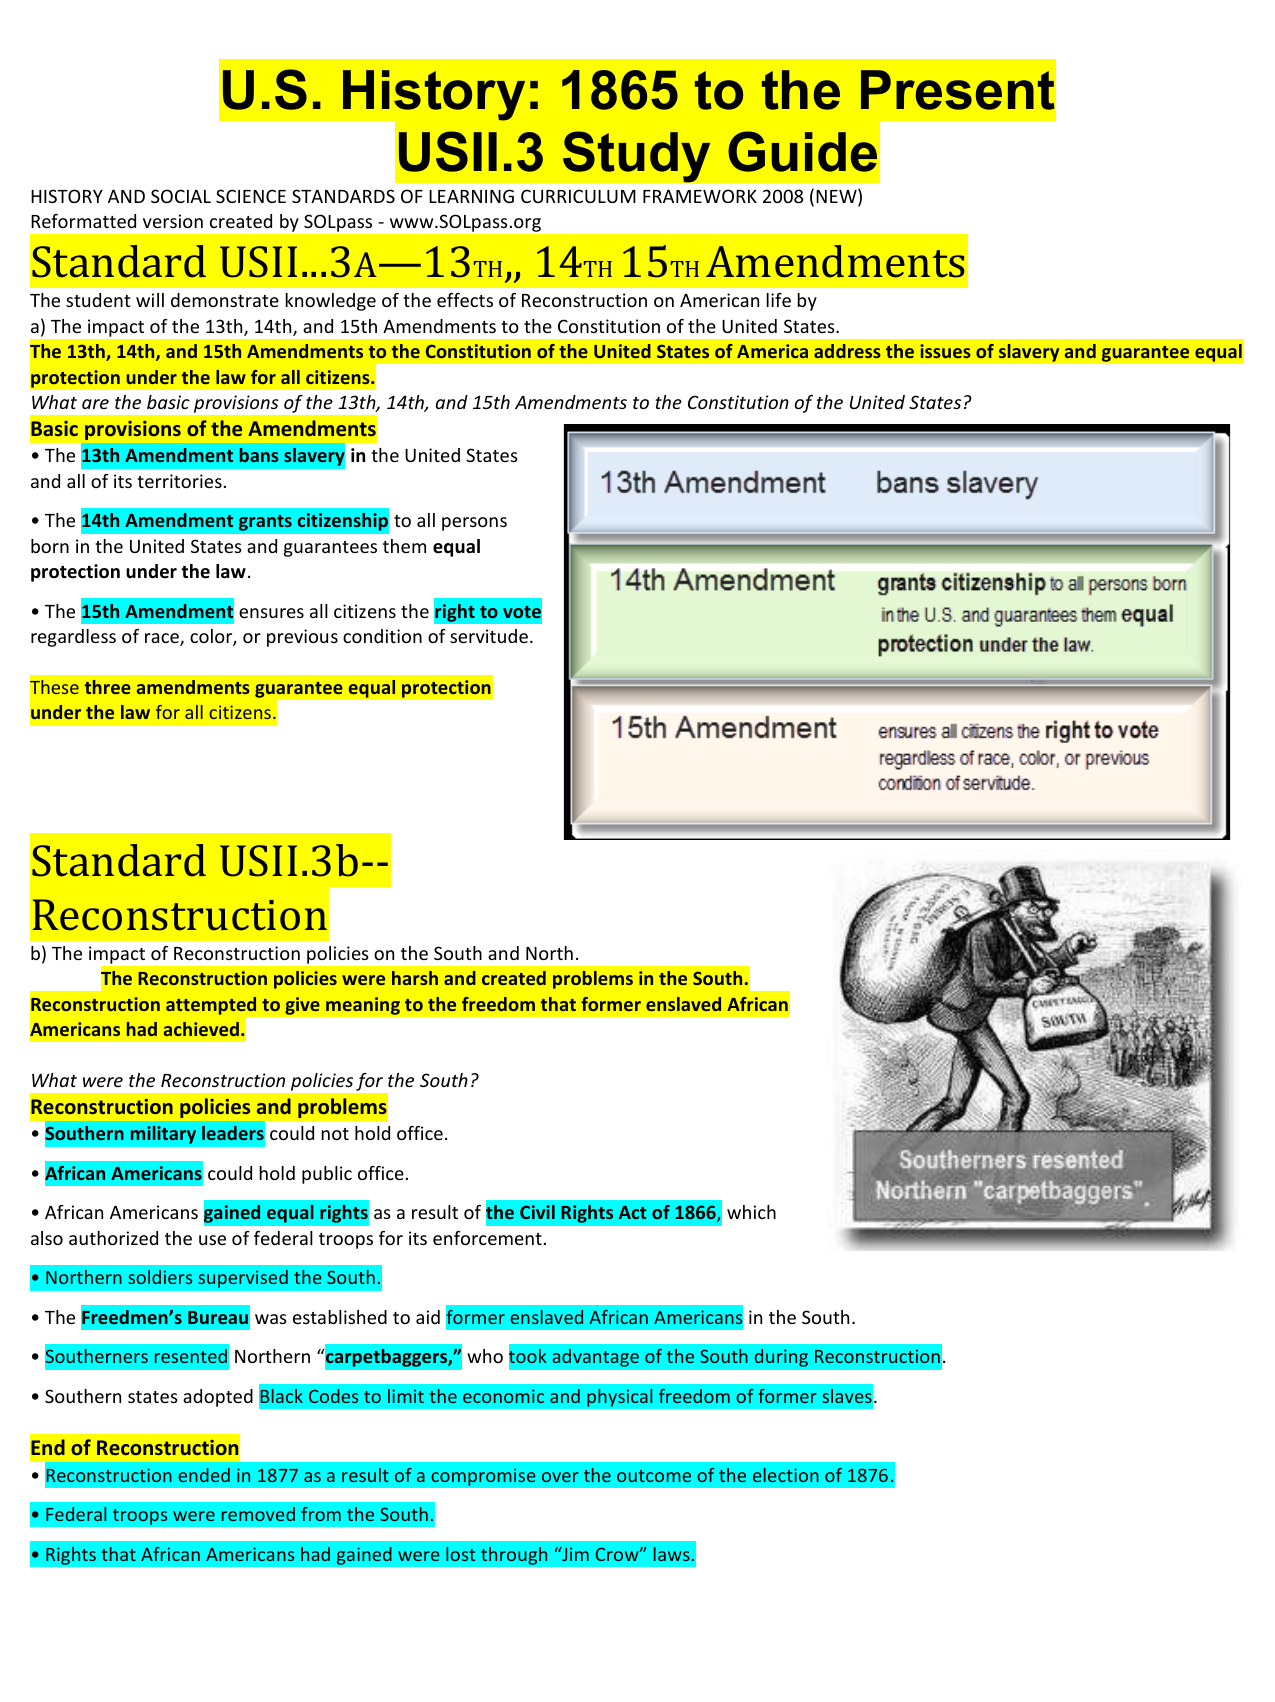 meaning of 15th amendment